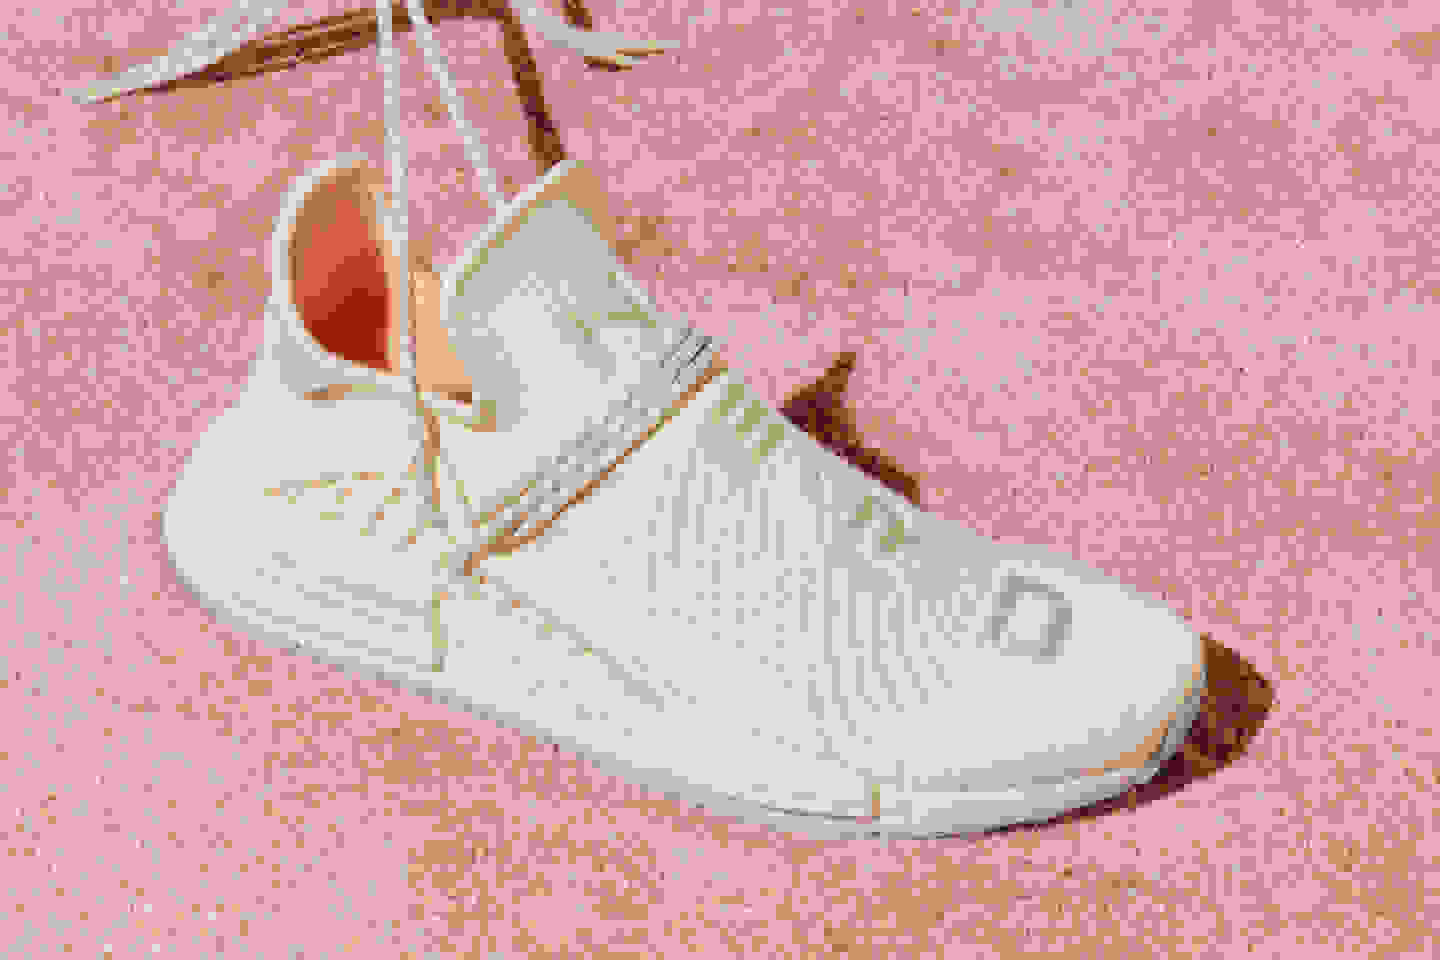 The HU NMD N.E.R.D. is set on a pink carpet. The chalk-coloured Primeknit upper, unique NMD lace-up and icy blue outsole are shown.